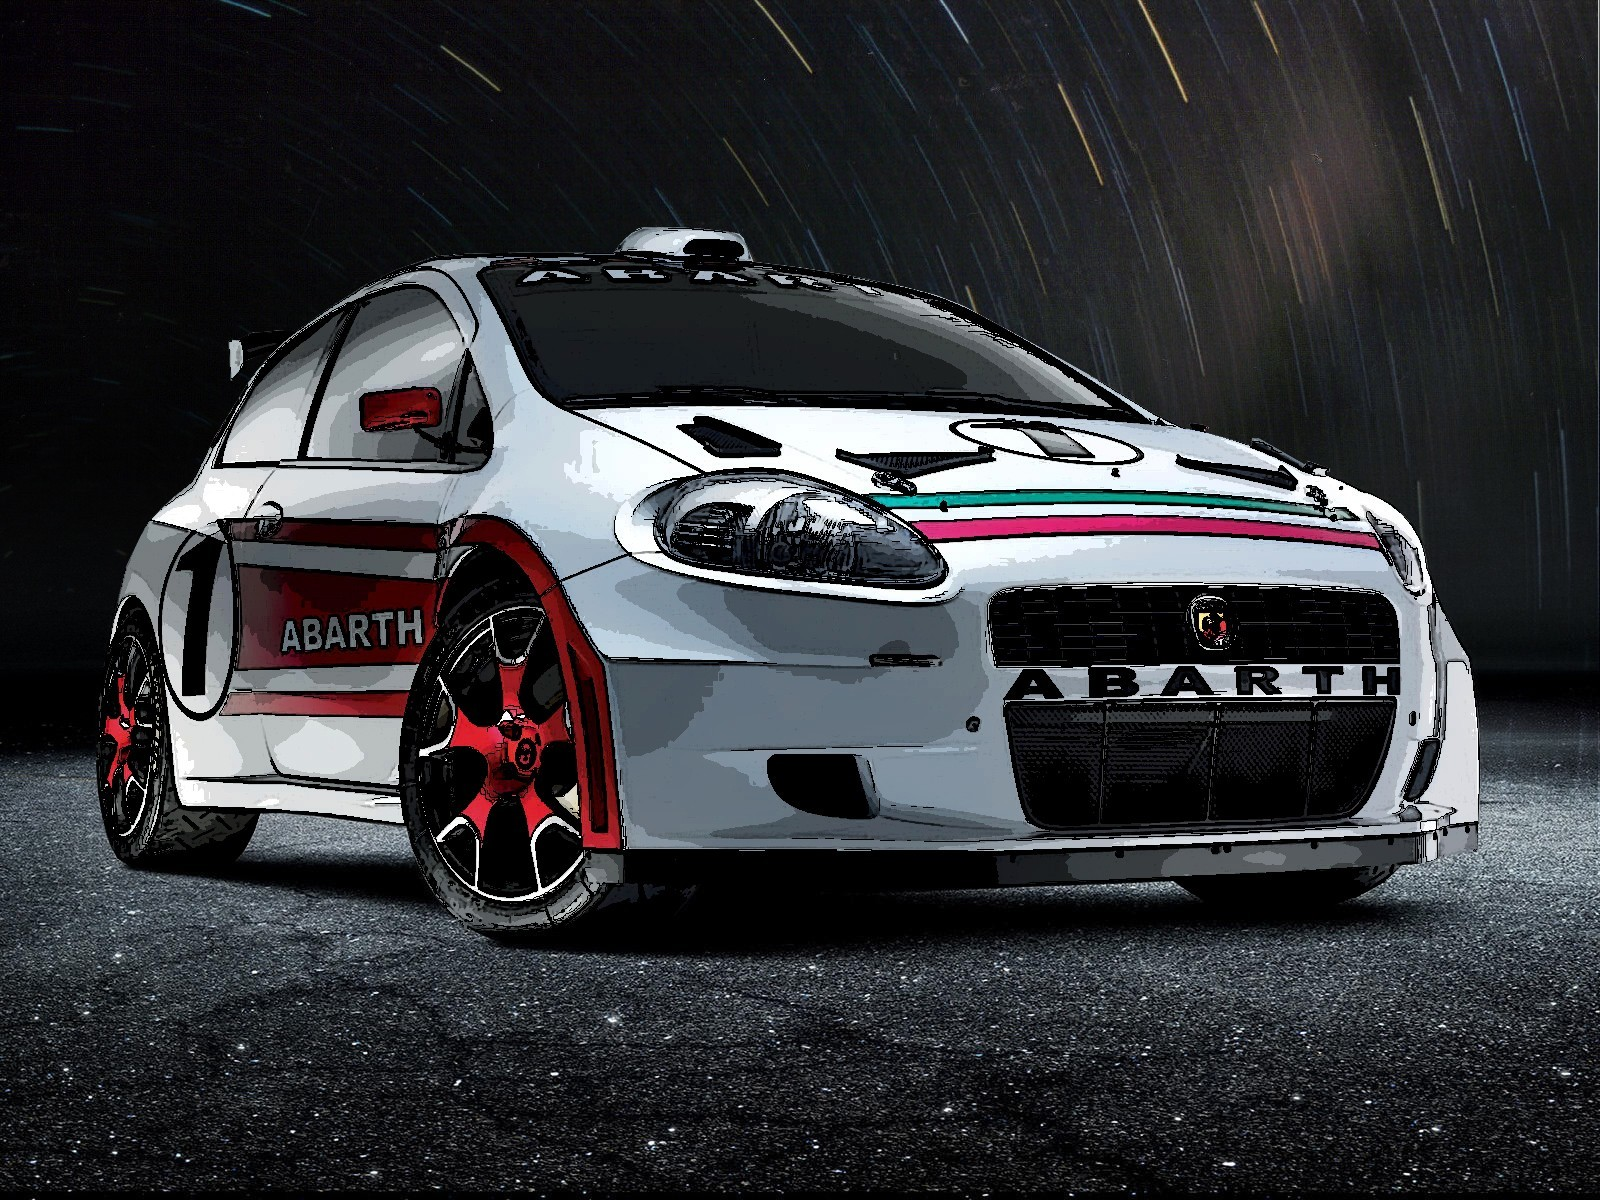 cars Fiat vehicles abarth HD Wallpaper